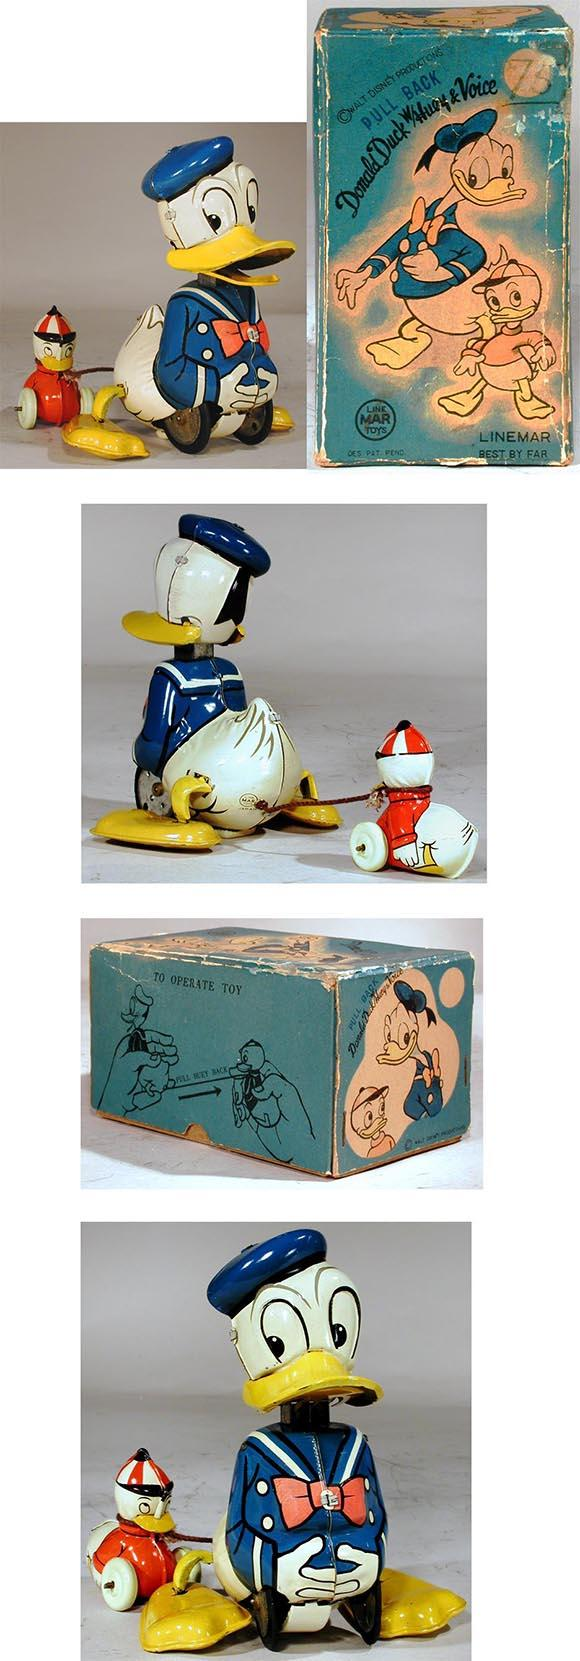 c.1955 Linemar, Donald Duck with Huey and Voice in Original Box